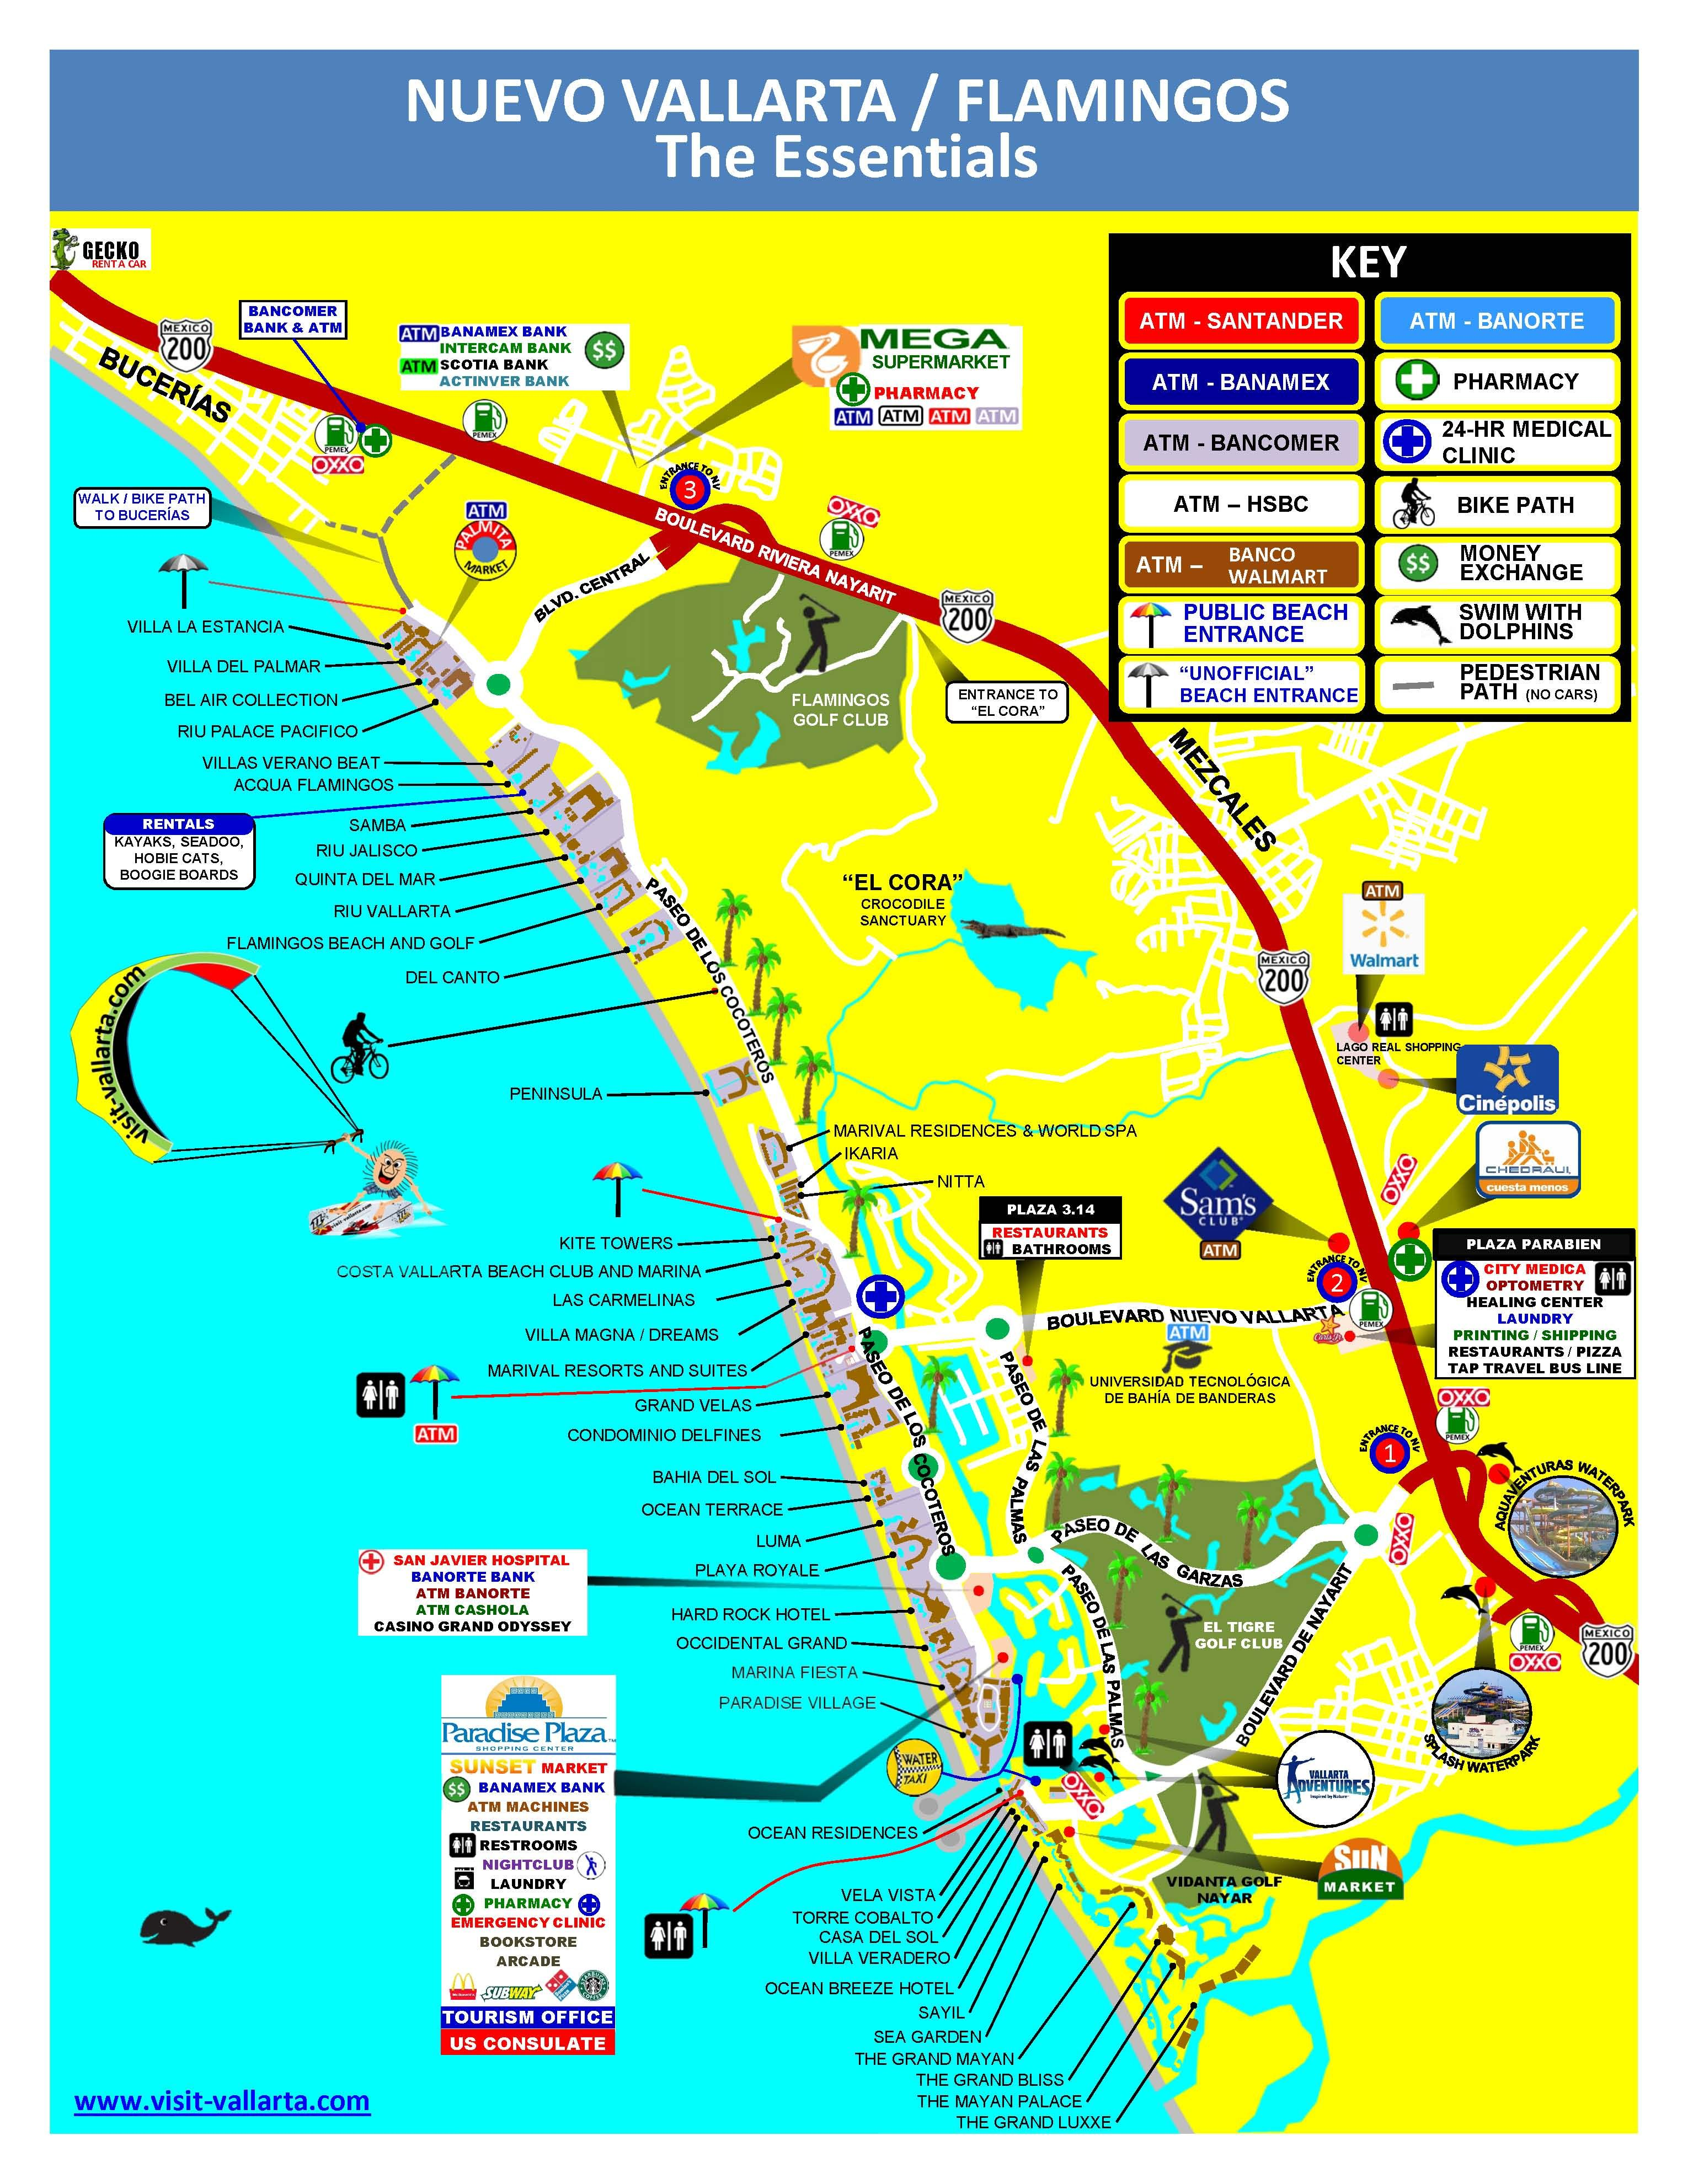 Nuevo Vallarta Map Nuevo Vallarta is just 15 minutes north of Puerto Vallarta, Mexico